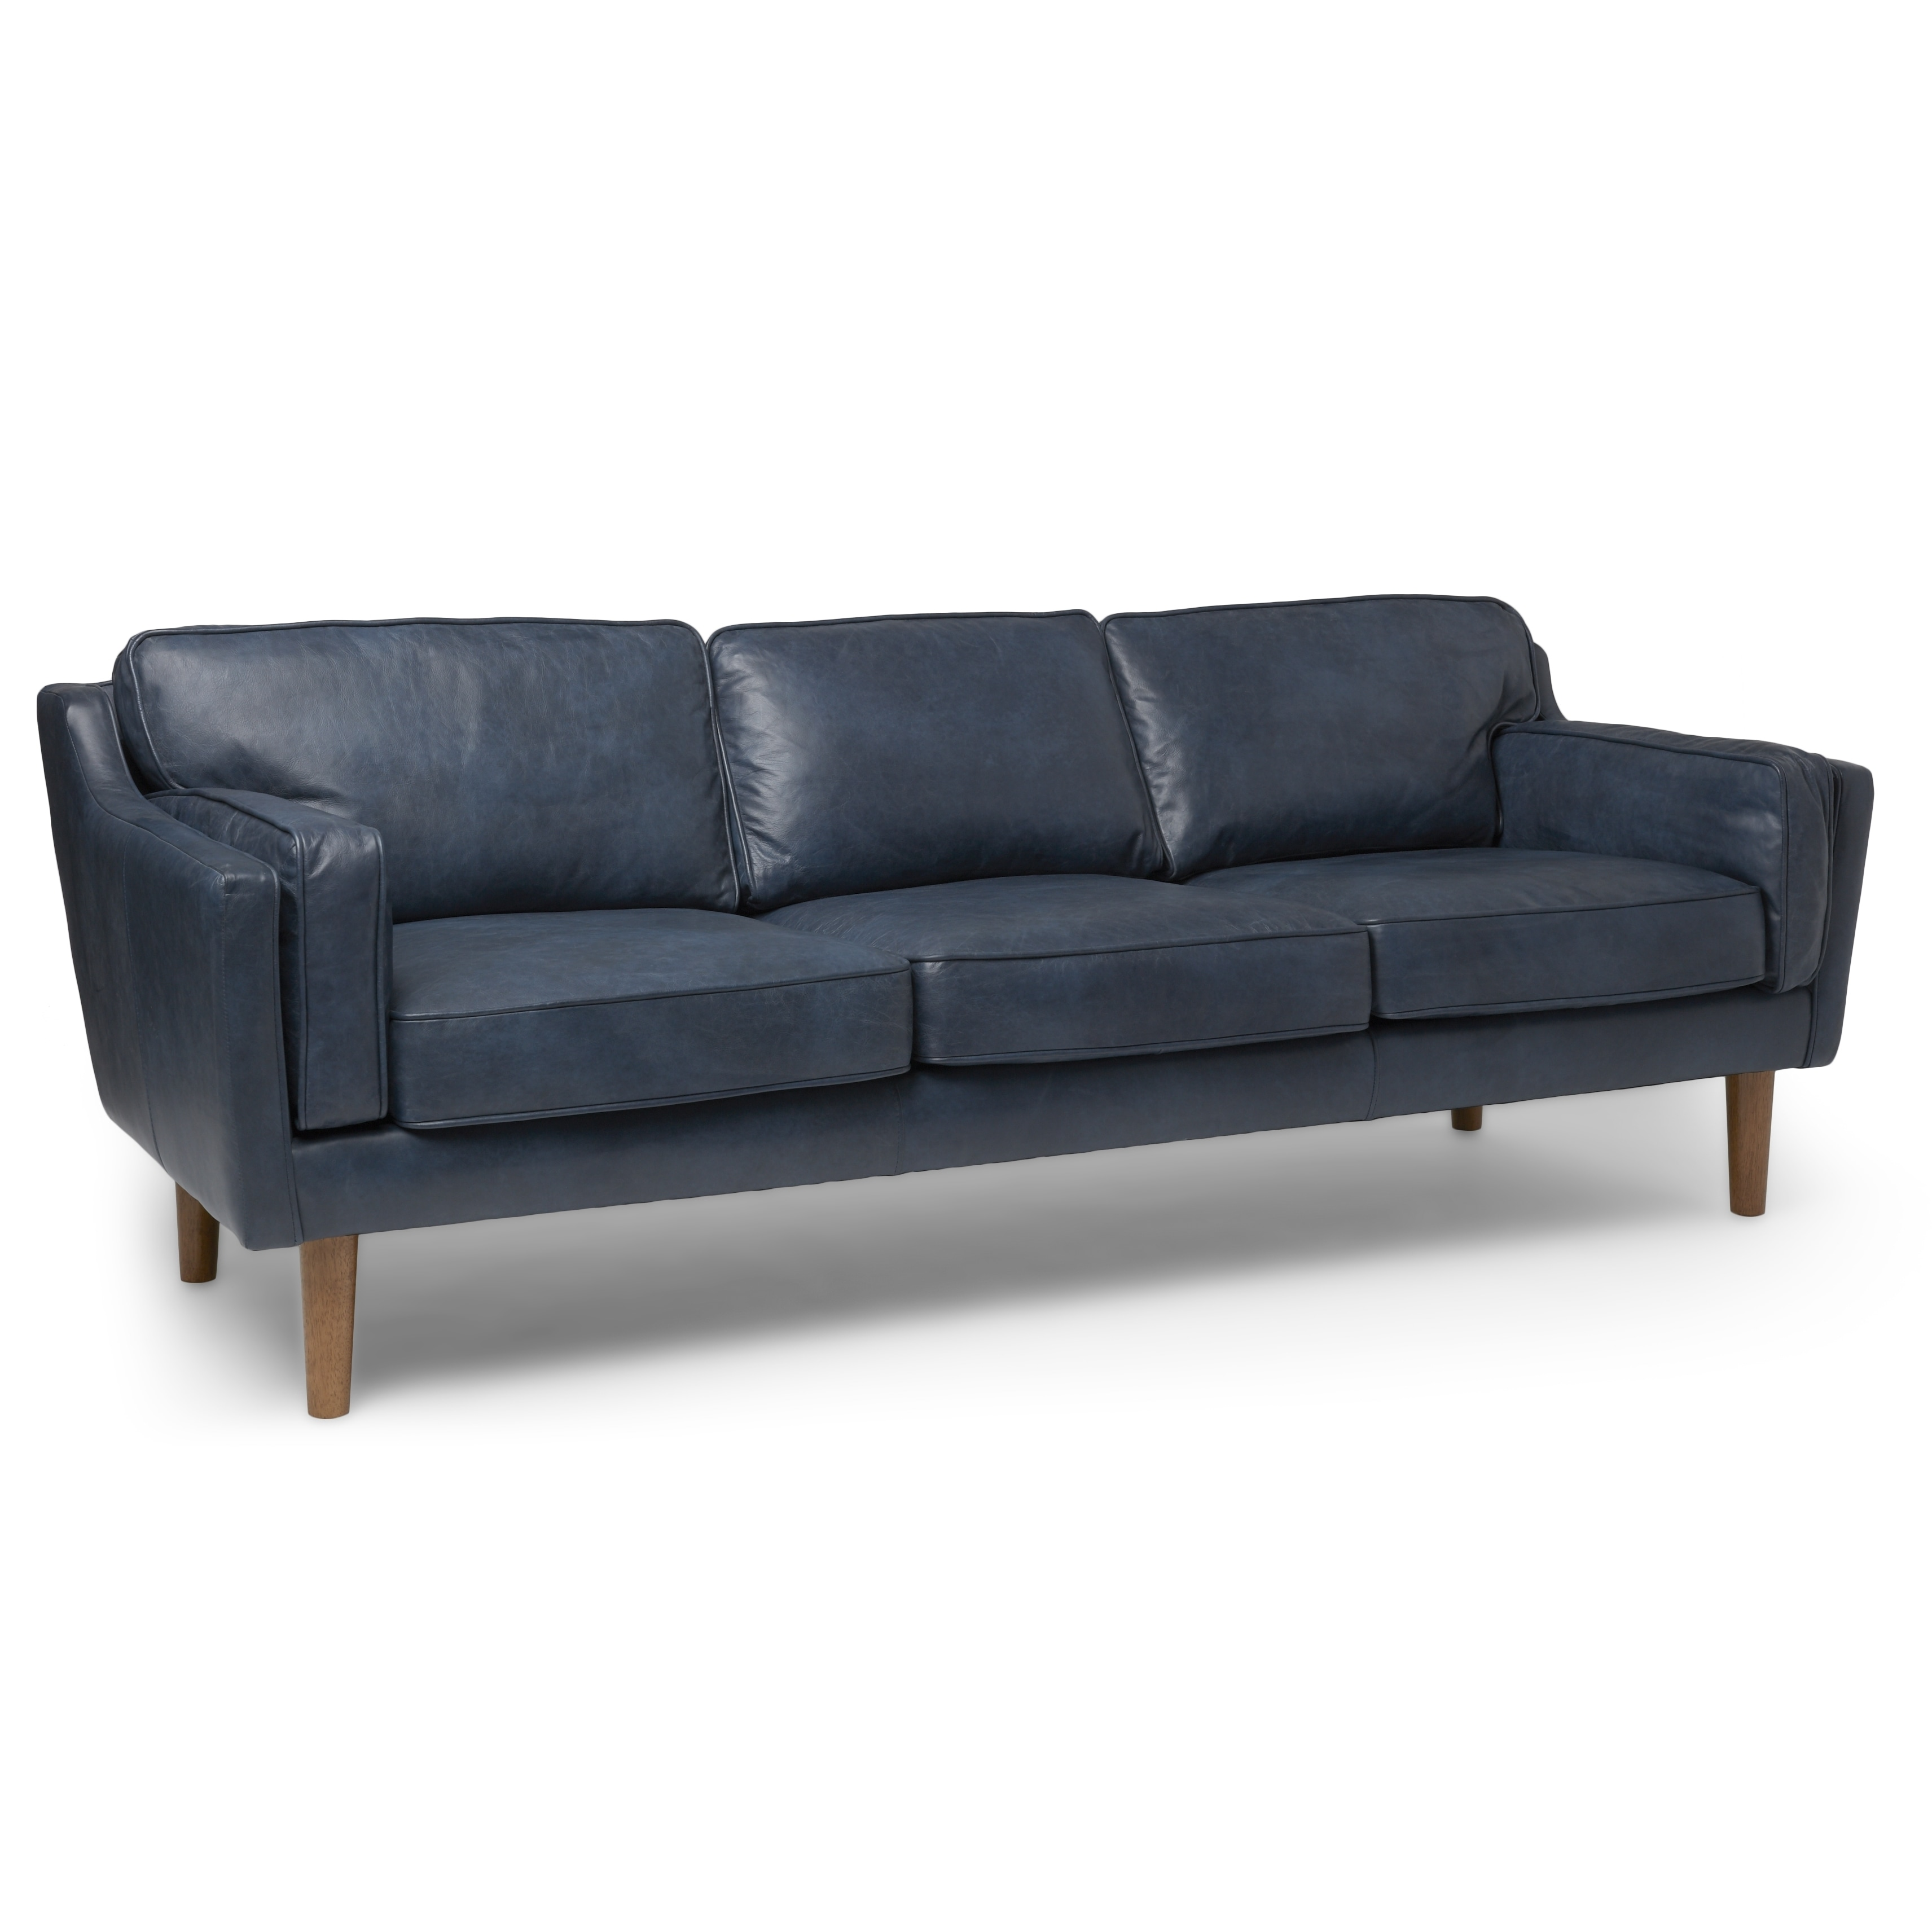 Jasper Laine Beatnik Oxford Leather Blue Sofa Free Shipping Today 13840865